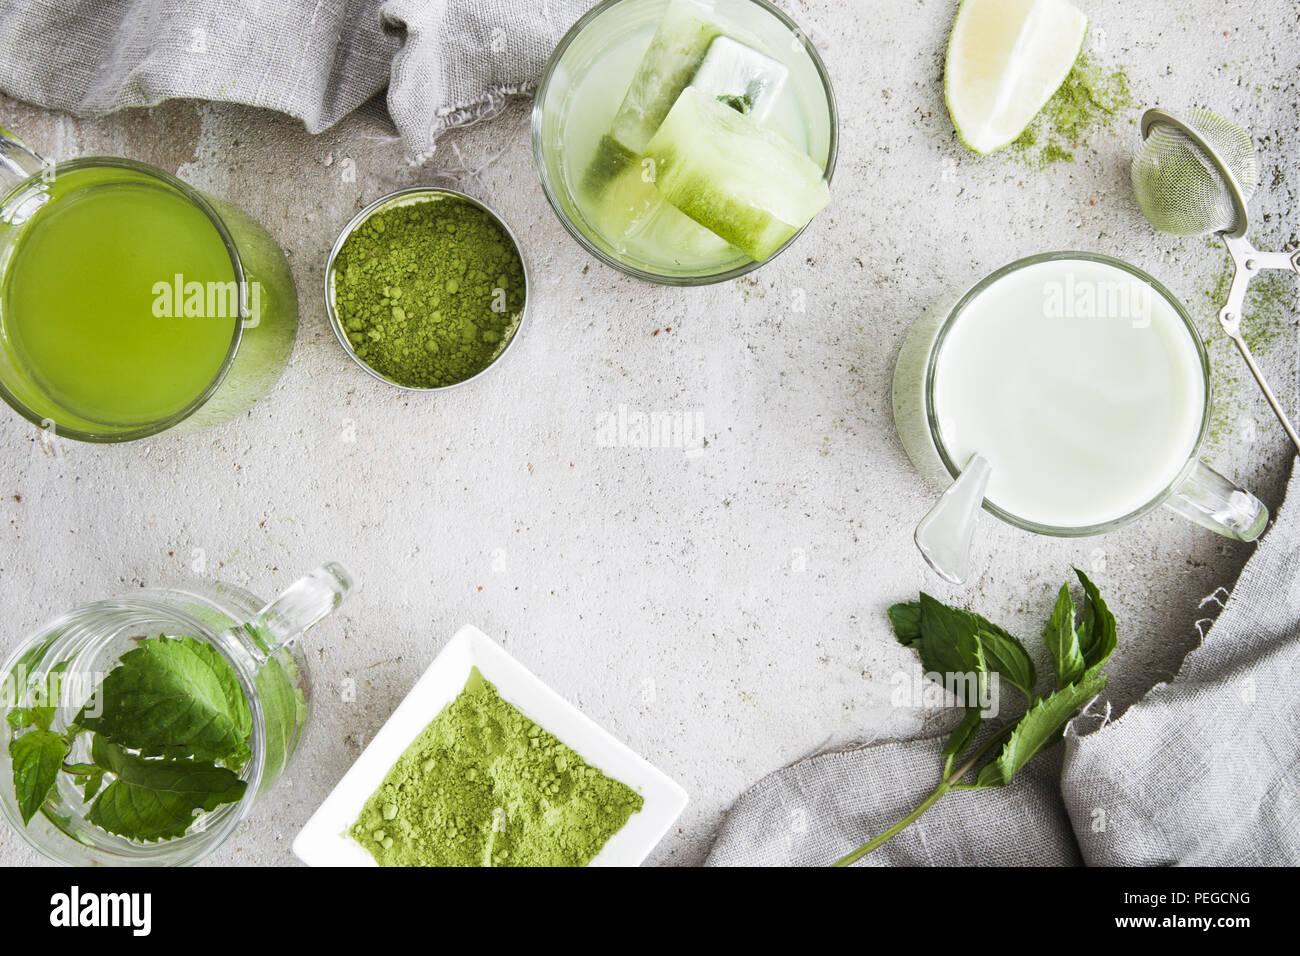 Selection of matcha beverages - Stock Image